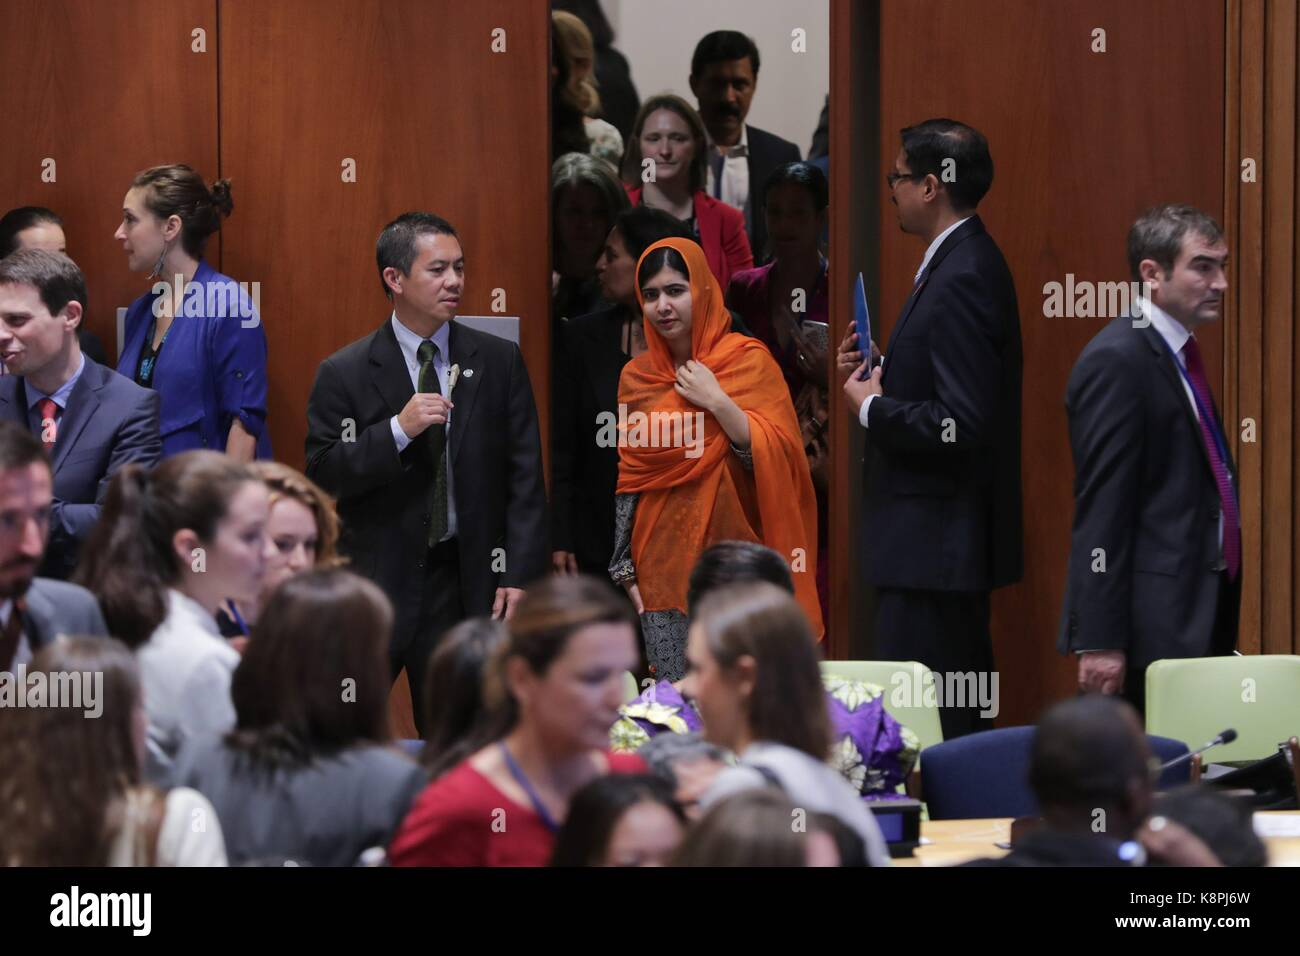 United Nations, New York, USA. 20th Sep, 2017. Malala Yousafzai, UN Messenger of Peace and Nobel Prize laureate, Stock Photo